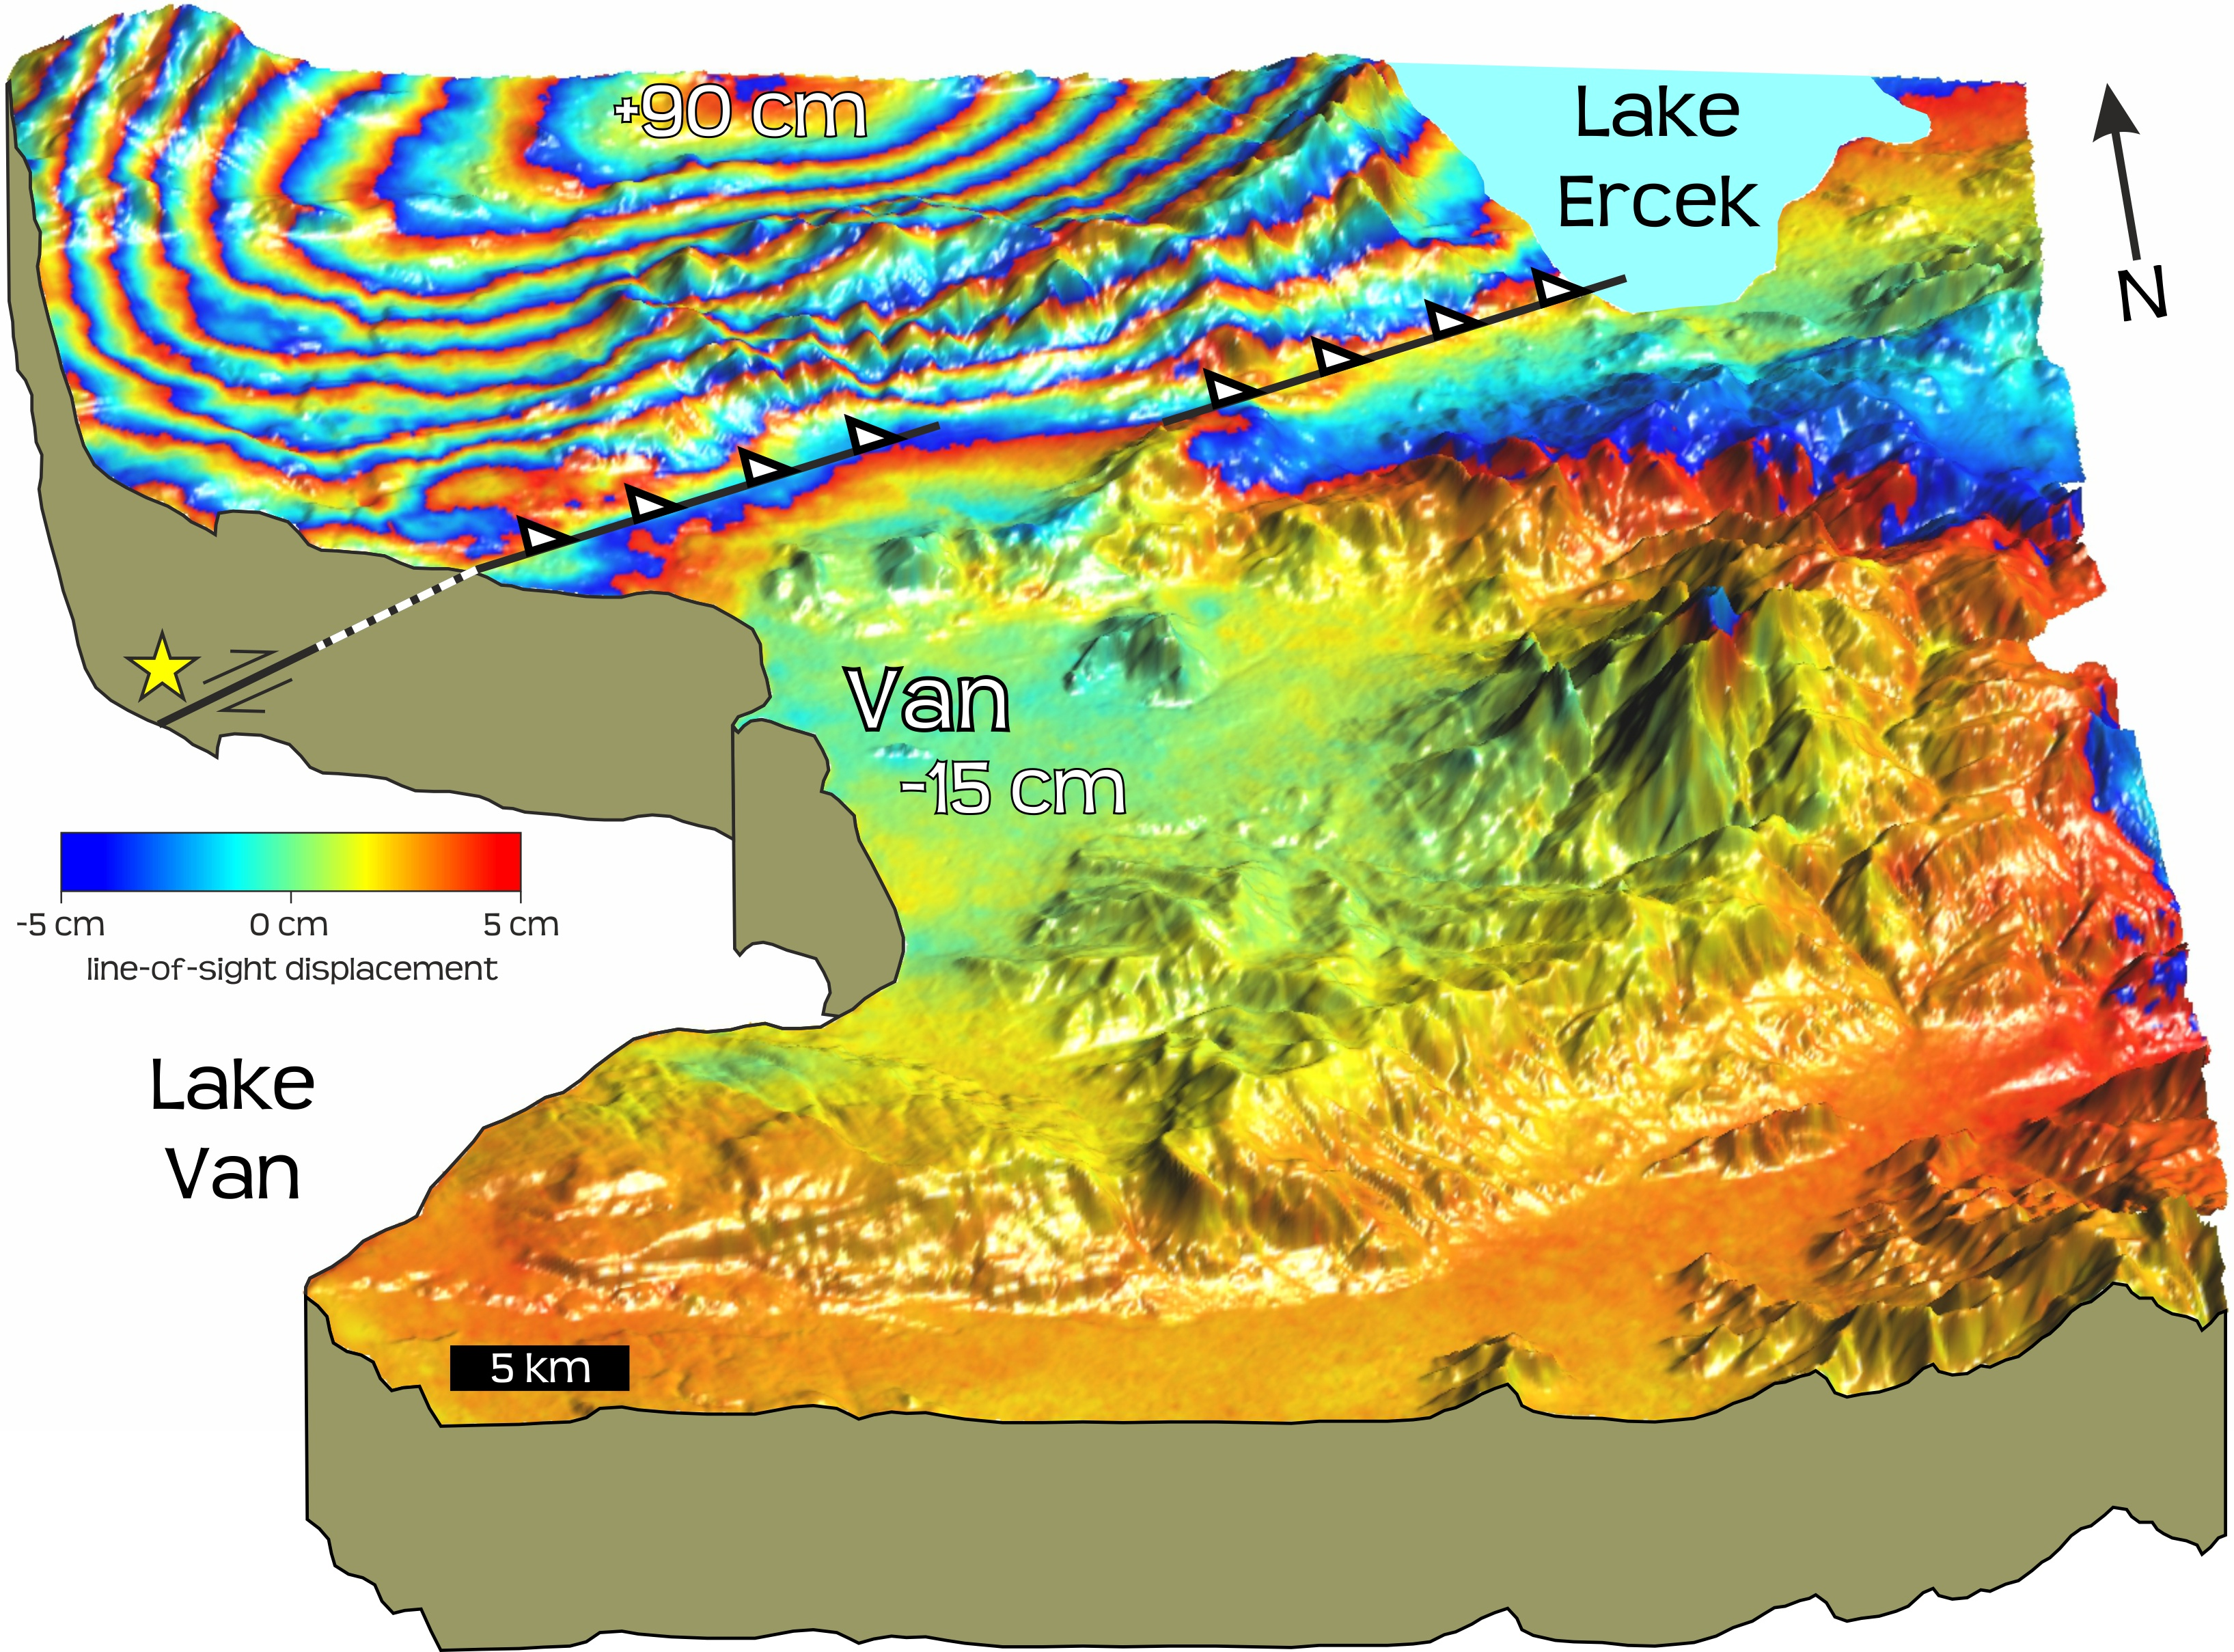 Figure 1: Perspective view of the ground deformation due to the October 2011 magnitude 7.1 earthquake which struck the city of Van in Eastern Turkey. The rainbow colours show 10 cm contours of ground motion (up to 90 cm uplift in the mountains north of Van and 15 cm of subsidence under the city itself). This deformation is measured using the Italian X-band radar satellite COSMO-SkyMed. With this high resolution data, the precise location of the faults (black lines and white triangles) on which the earthquake occurred (yellow star at 15 km depth) can be found. This highlights which portions of the fault ruptured in the quake, and more importantly for examining future seismic hazard, which portions did not break – in this case the shallow sections of the fault (dashed line), nearer the city of Van.